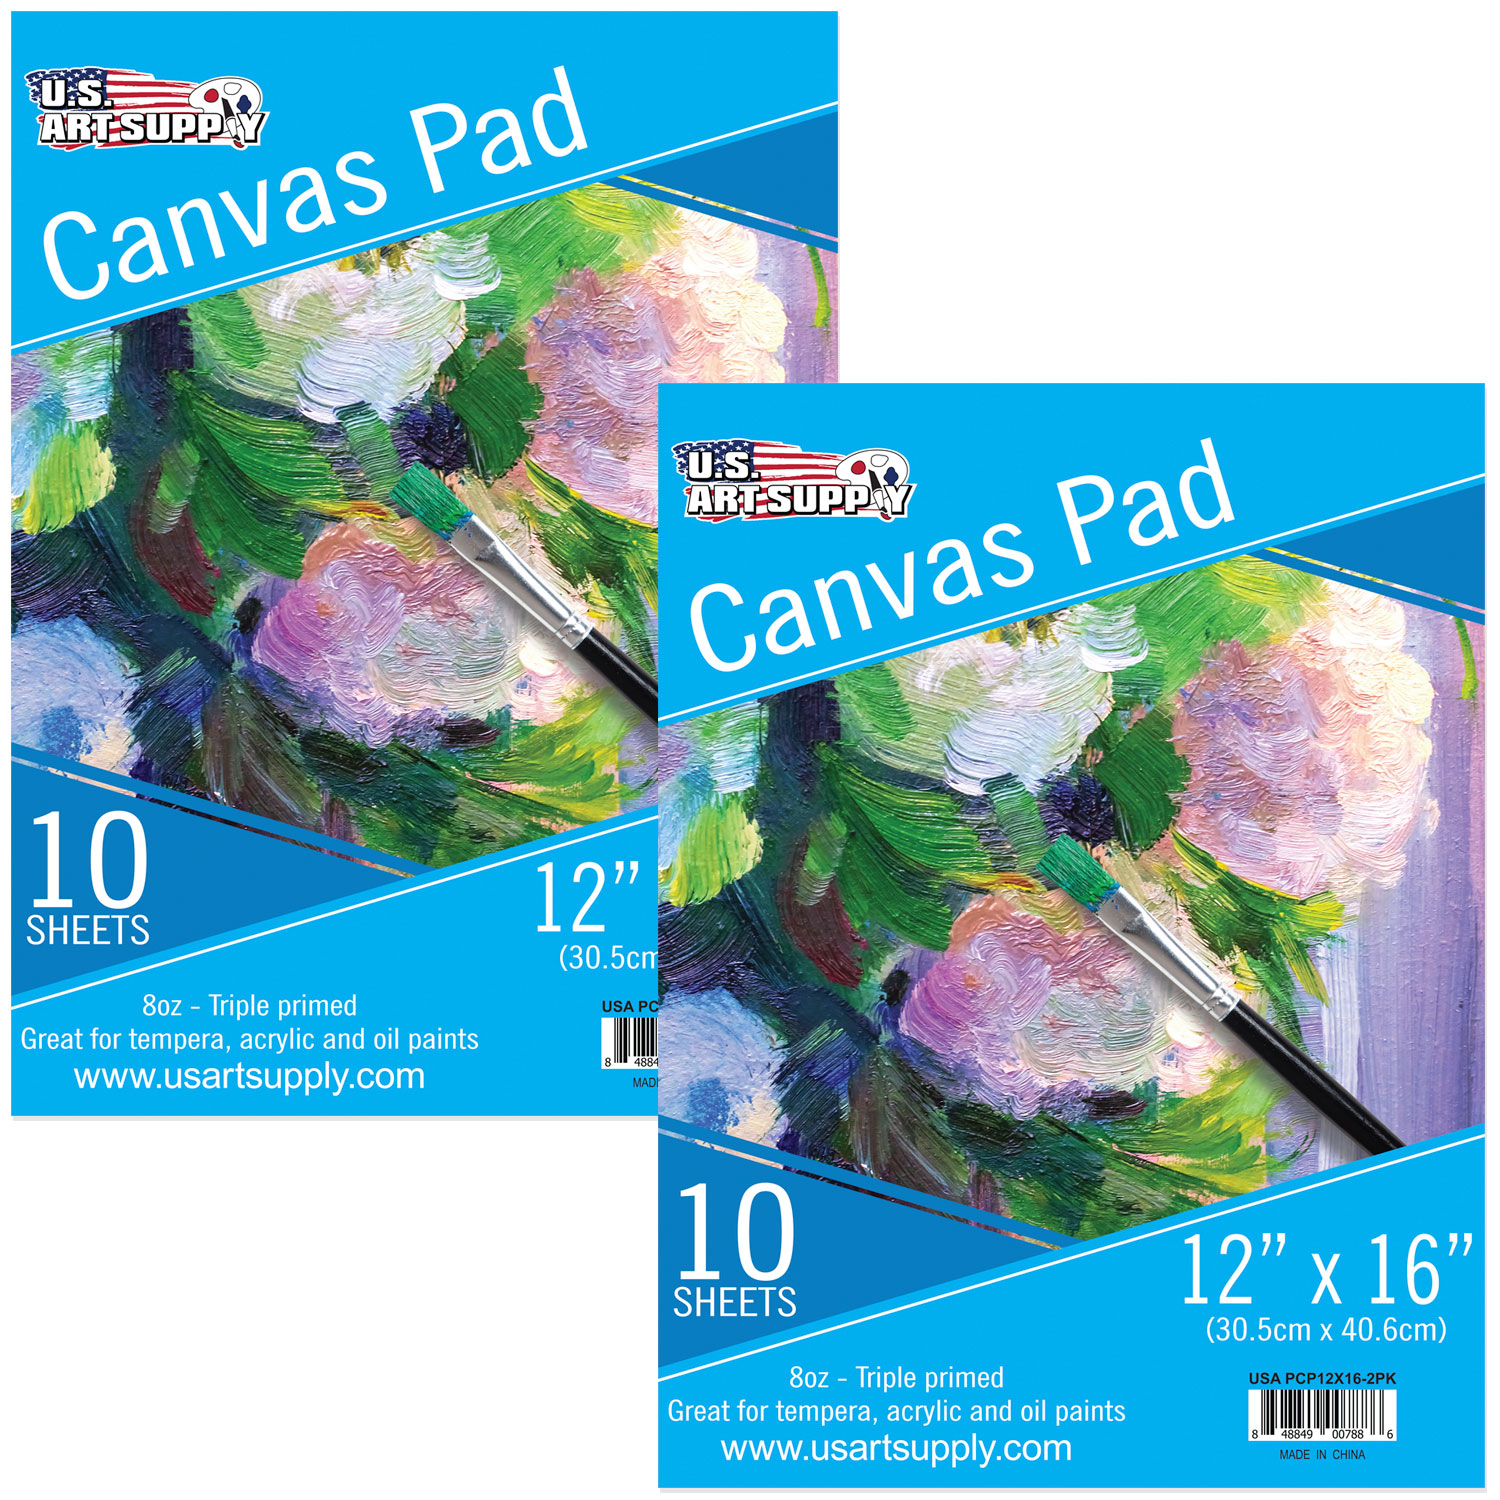 "U.S. Art Supply 12"" x 16"" 10-Sheet 8-Ounce Triple Primed Acid-Free Canvas Paper Pad (Pack of 2 Pads)"